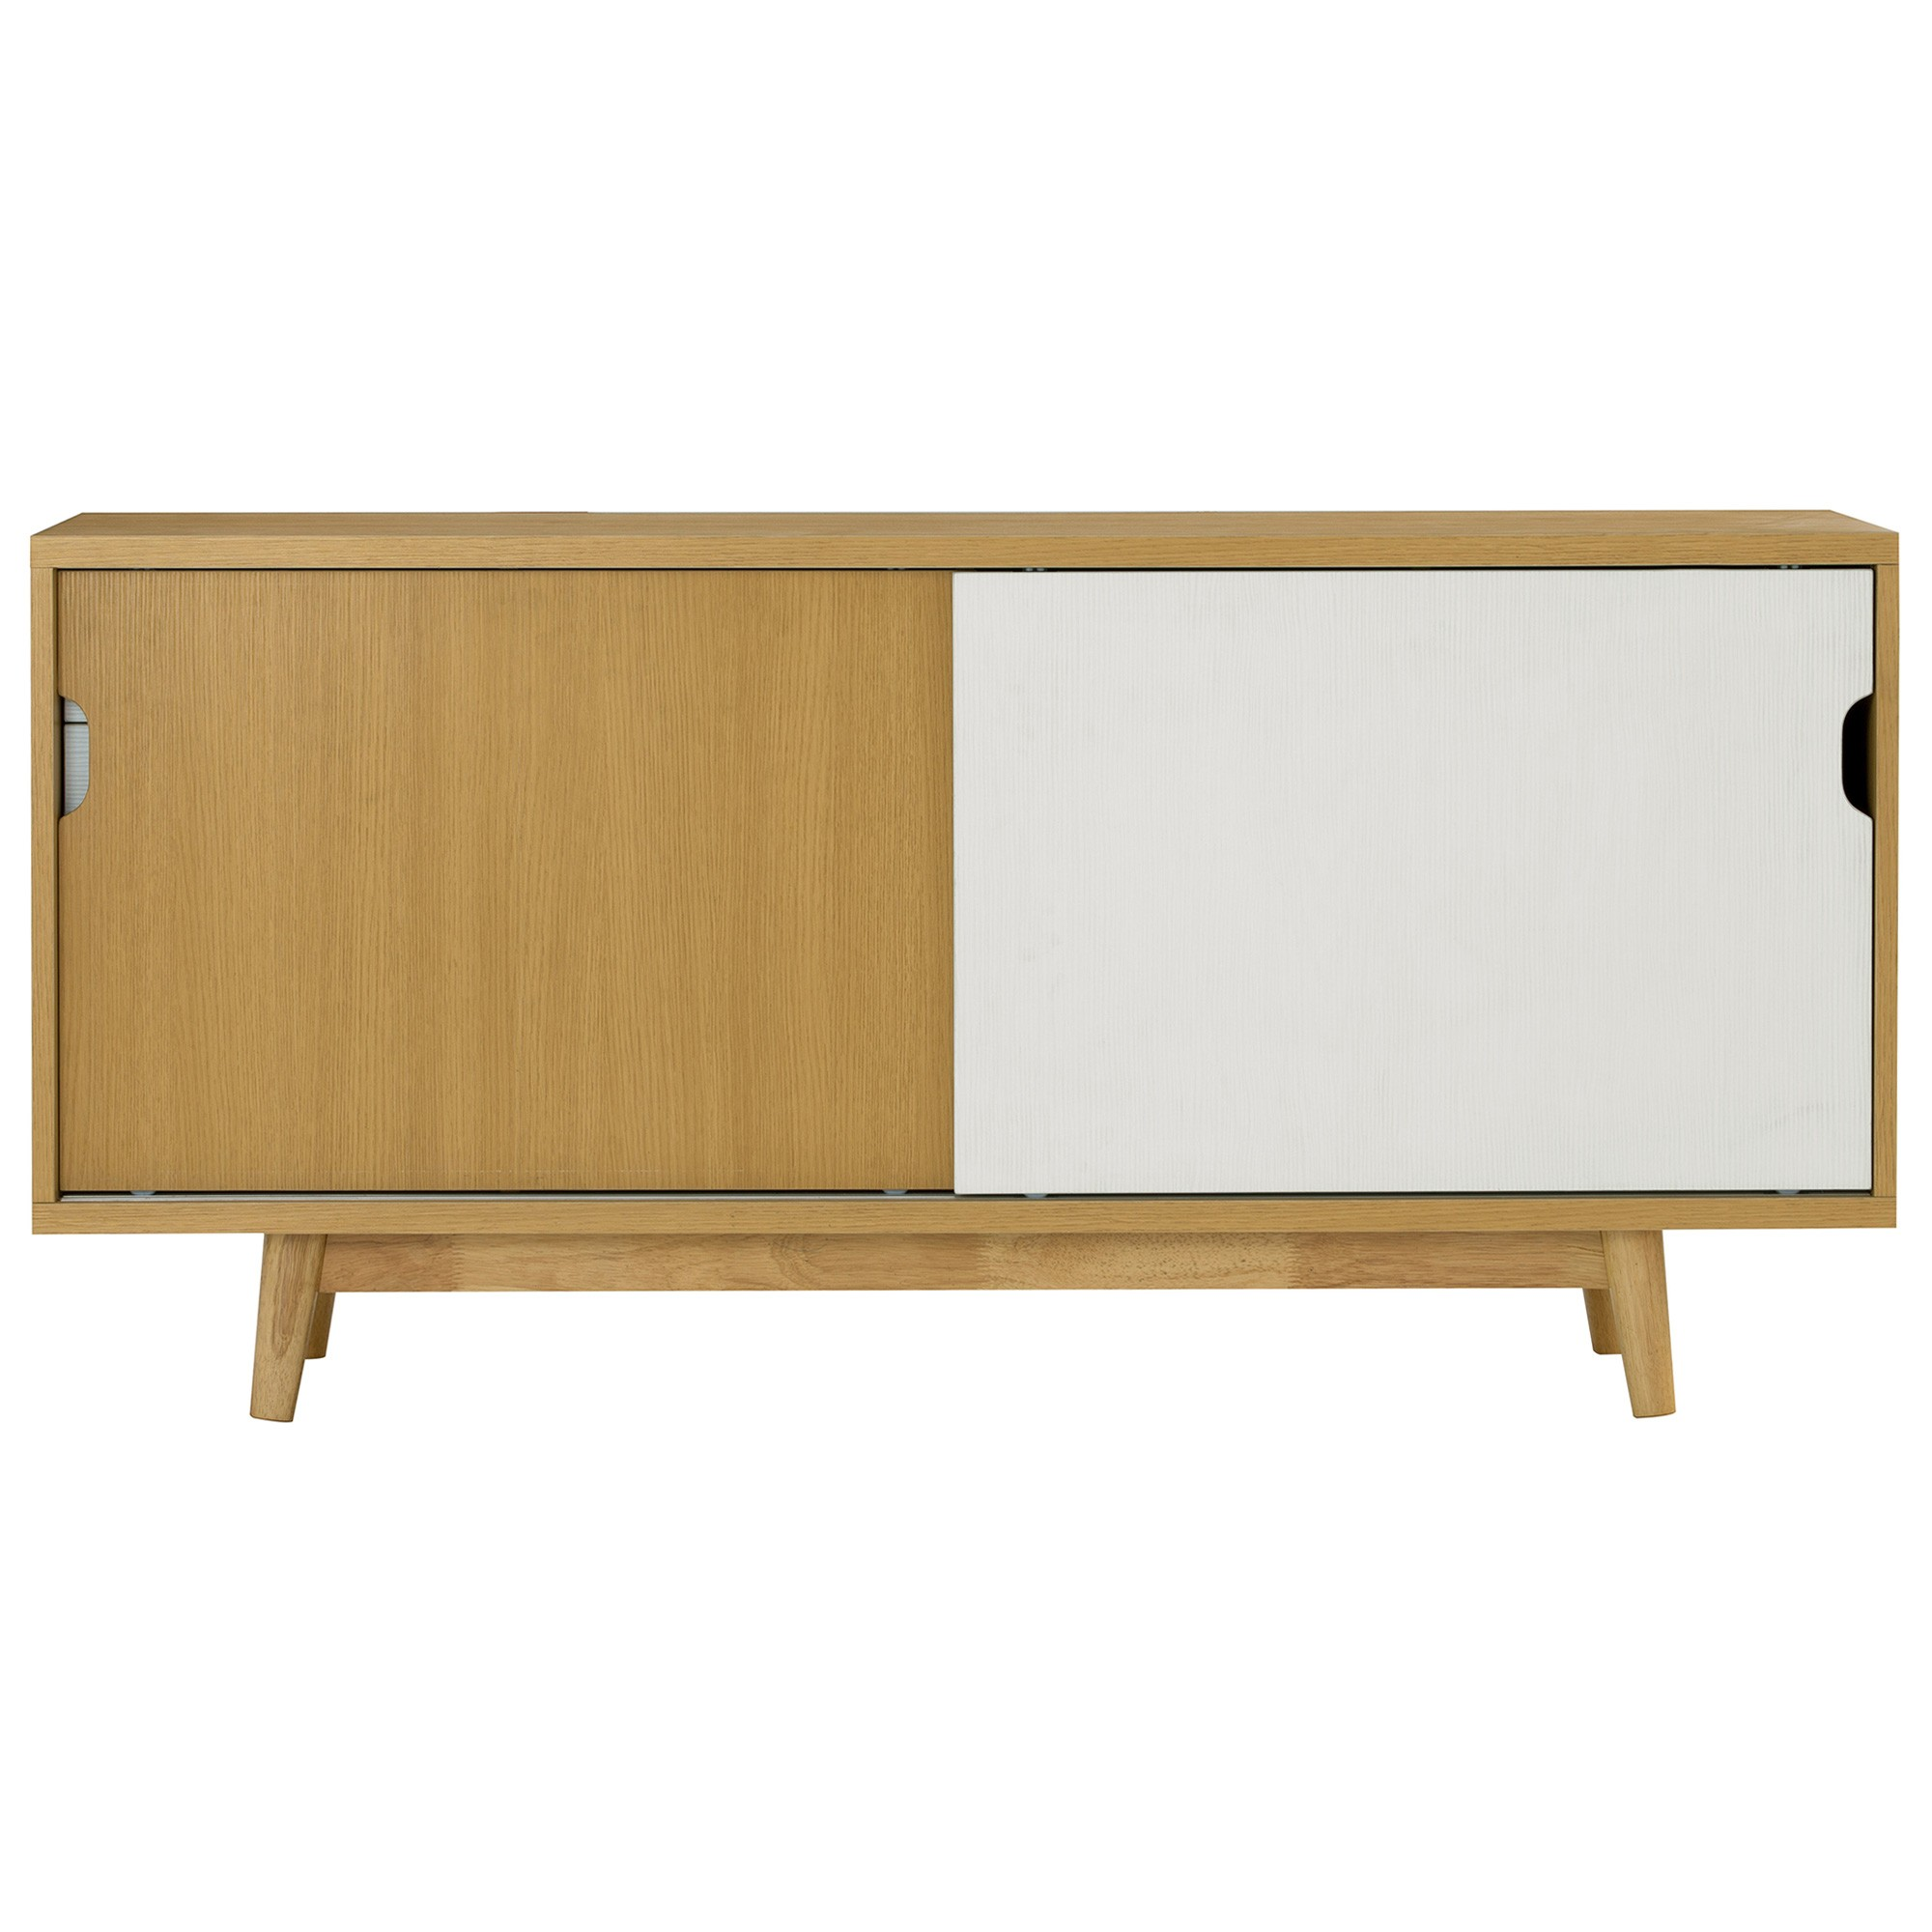 Ansa Sliding Door Buffet Table, 150cm